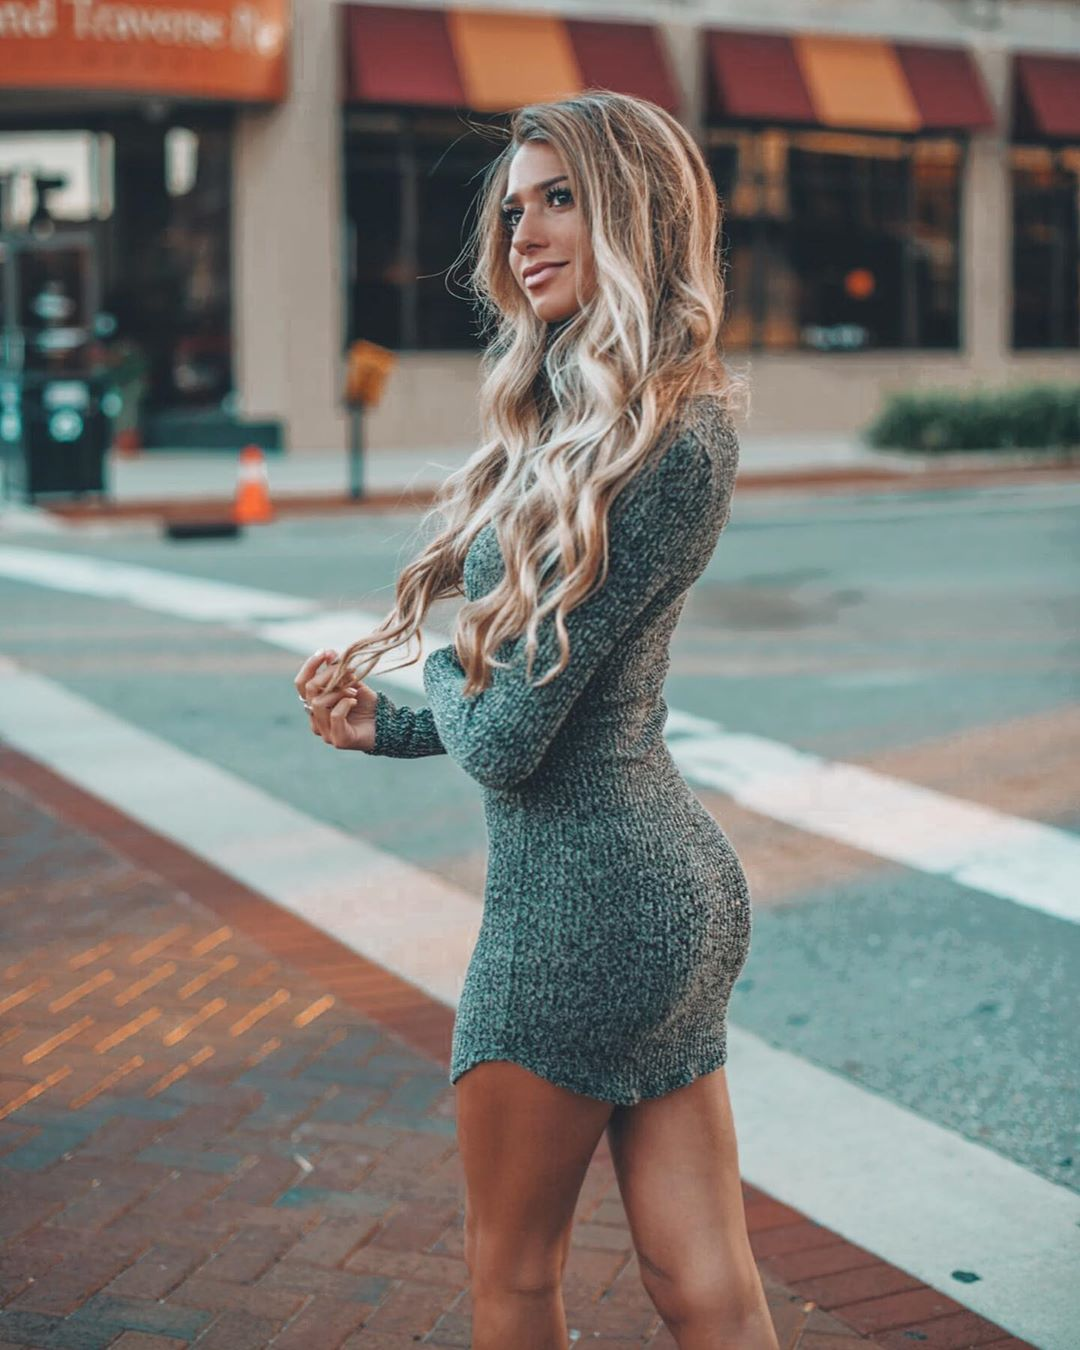 Emily-Tanner-Wallpapers-Insta-Fit-Bio-3